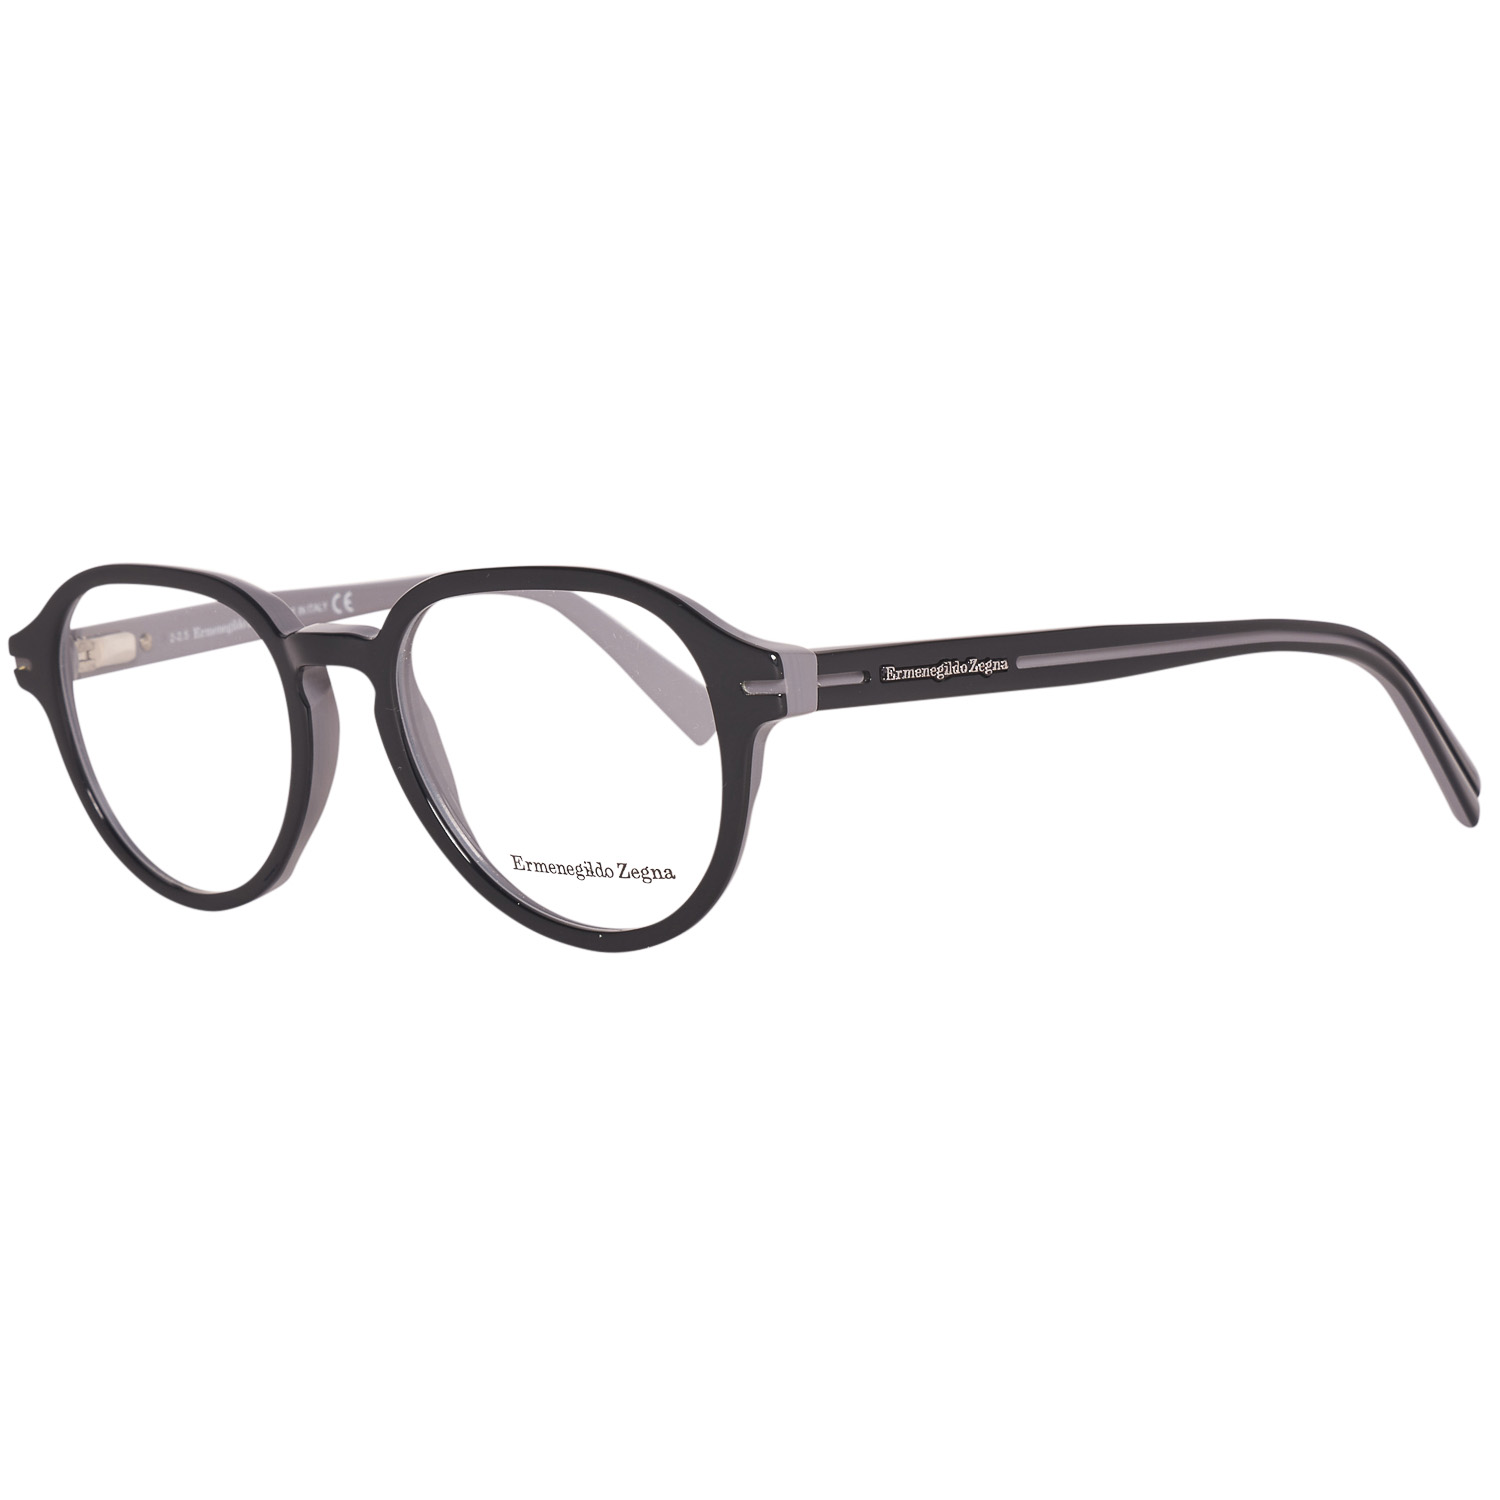 Ermenegildo Zegna Optical Frame EZ5043 005 49 Black